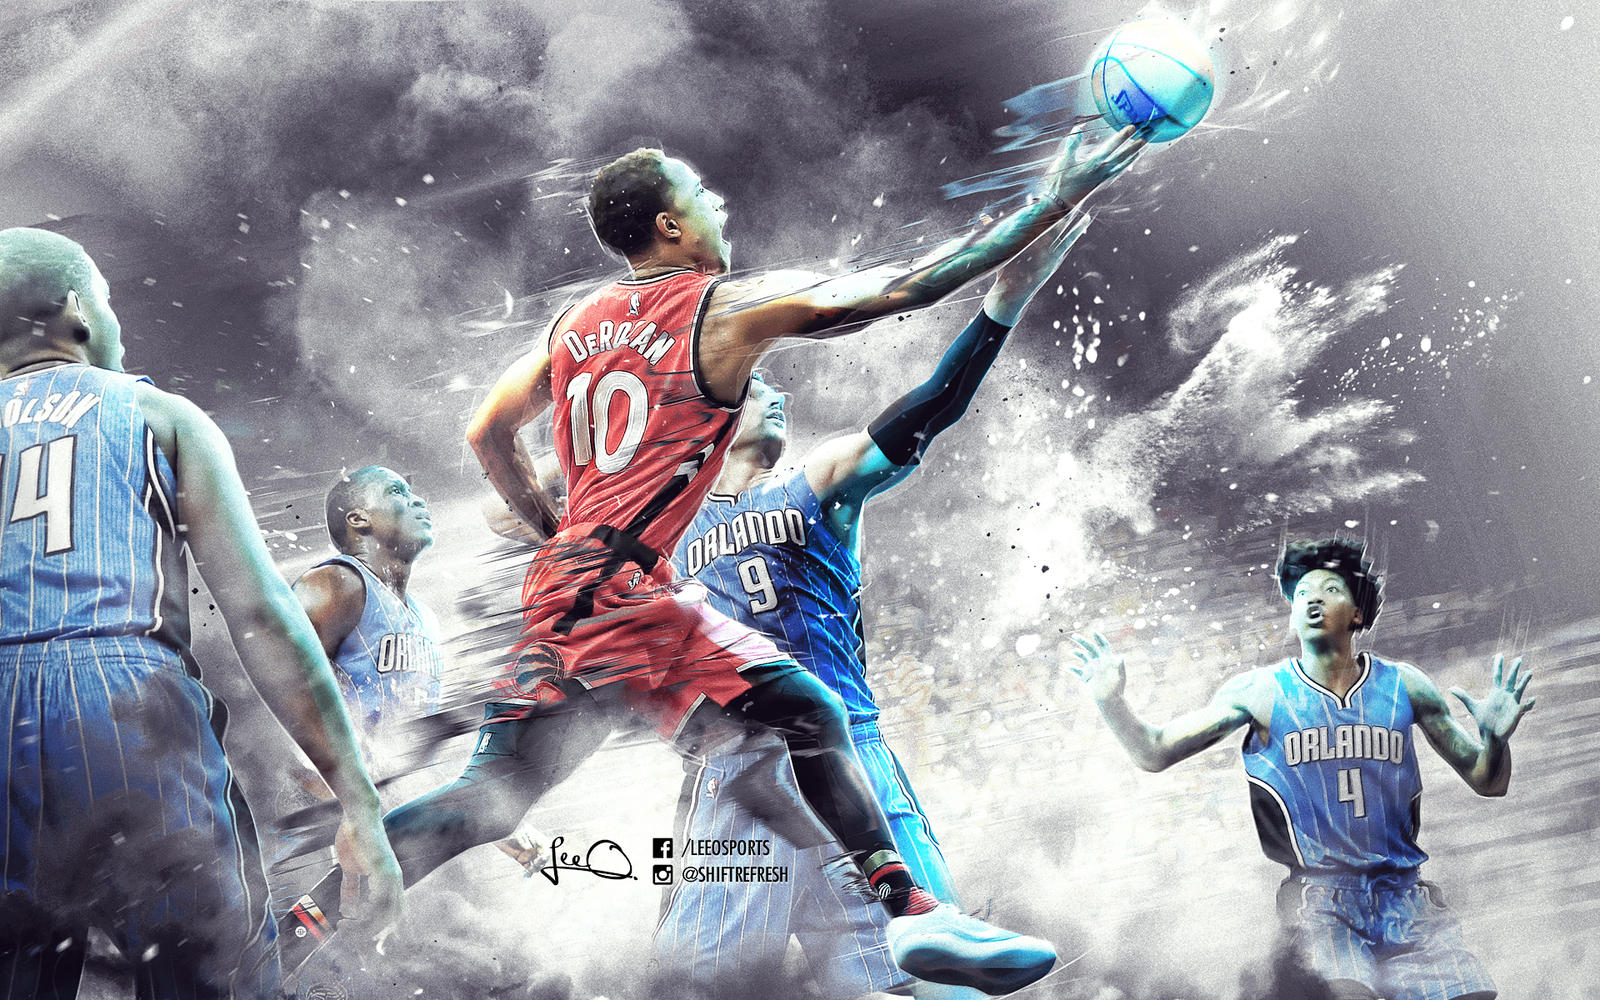 Nba backgrounds 2013